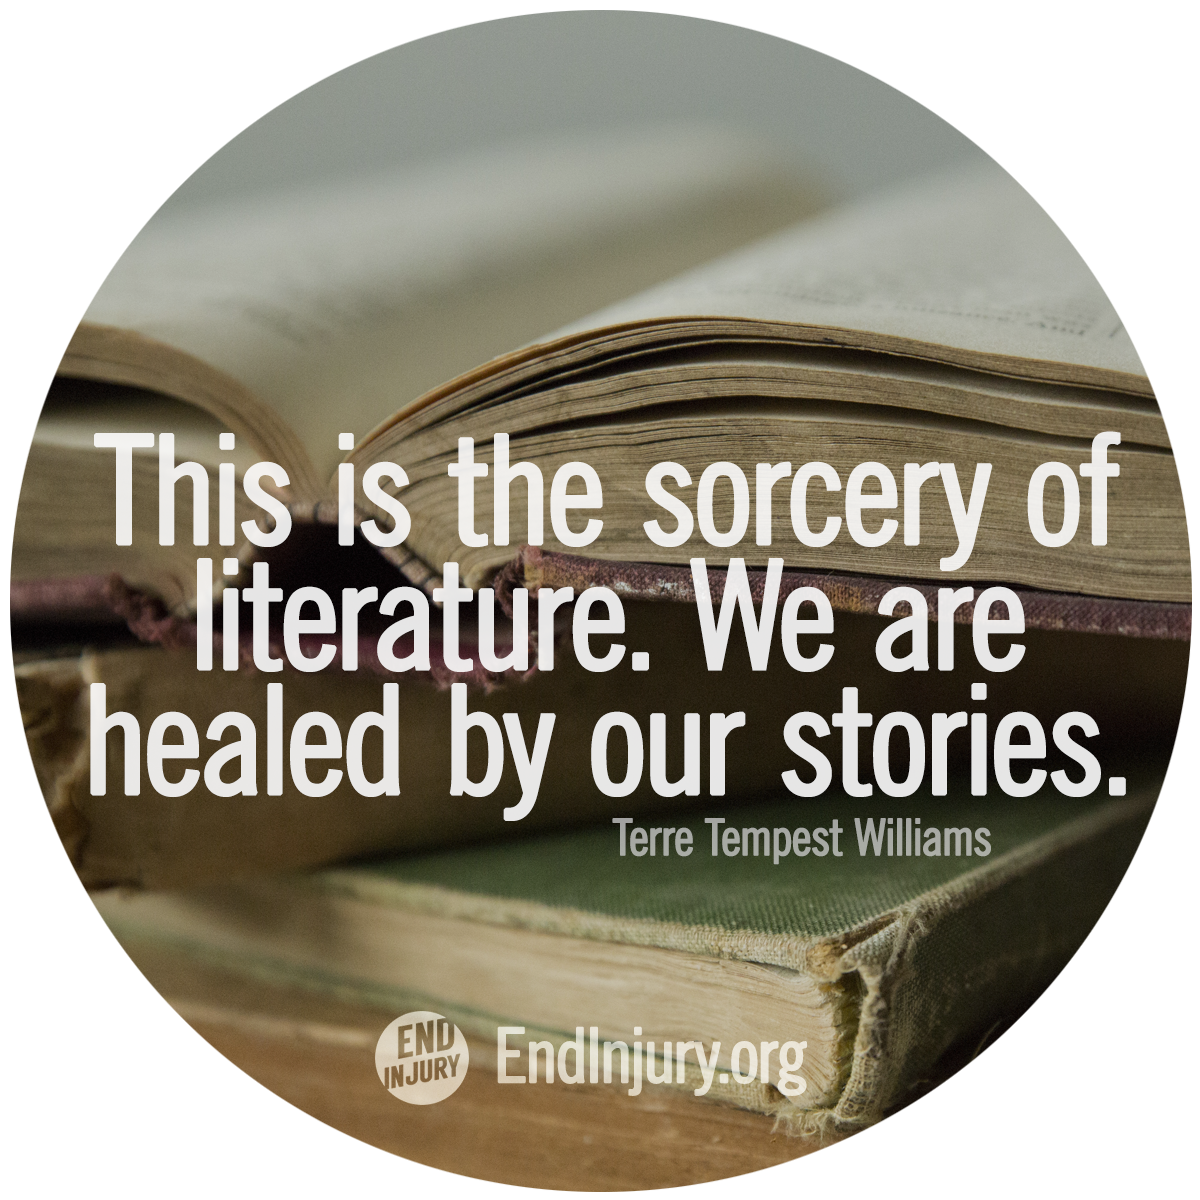 healed-by-stories-williams-quote-photo.png